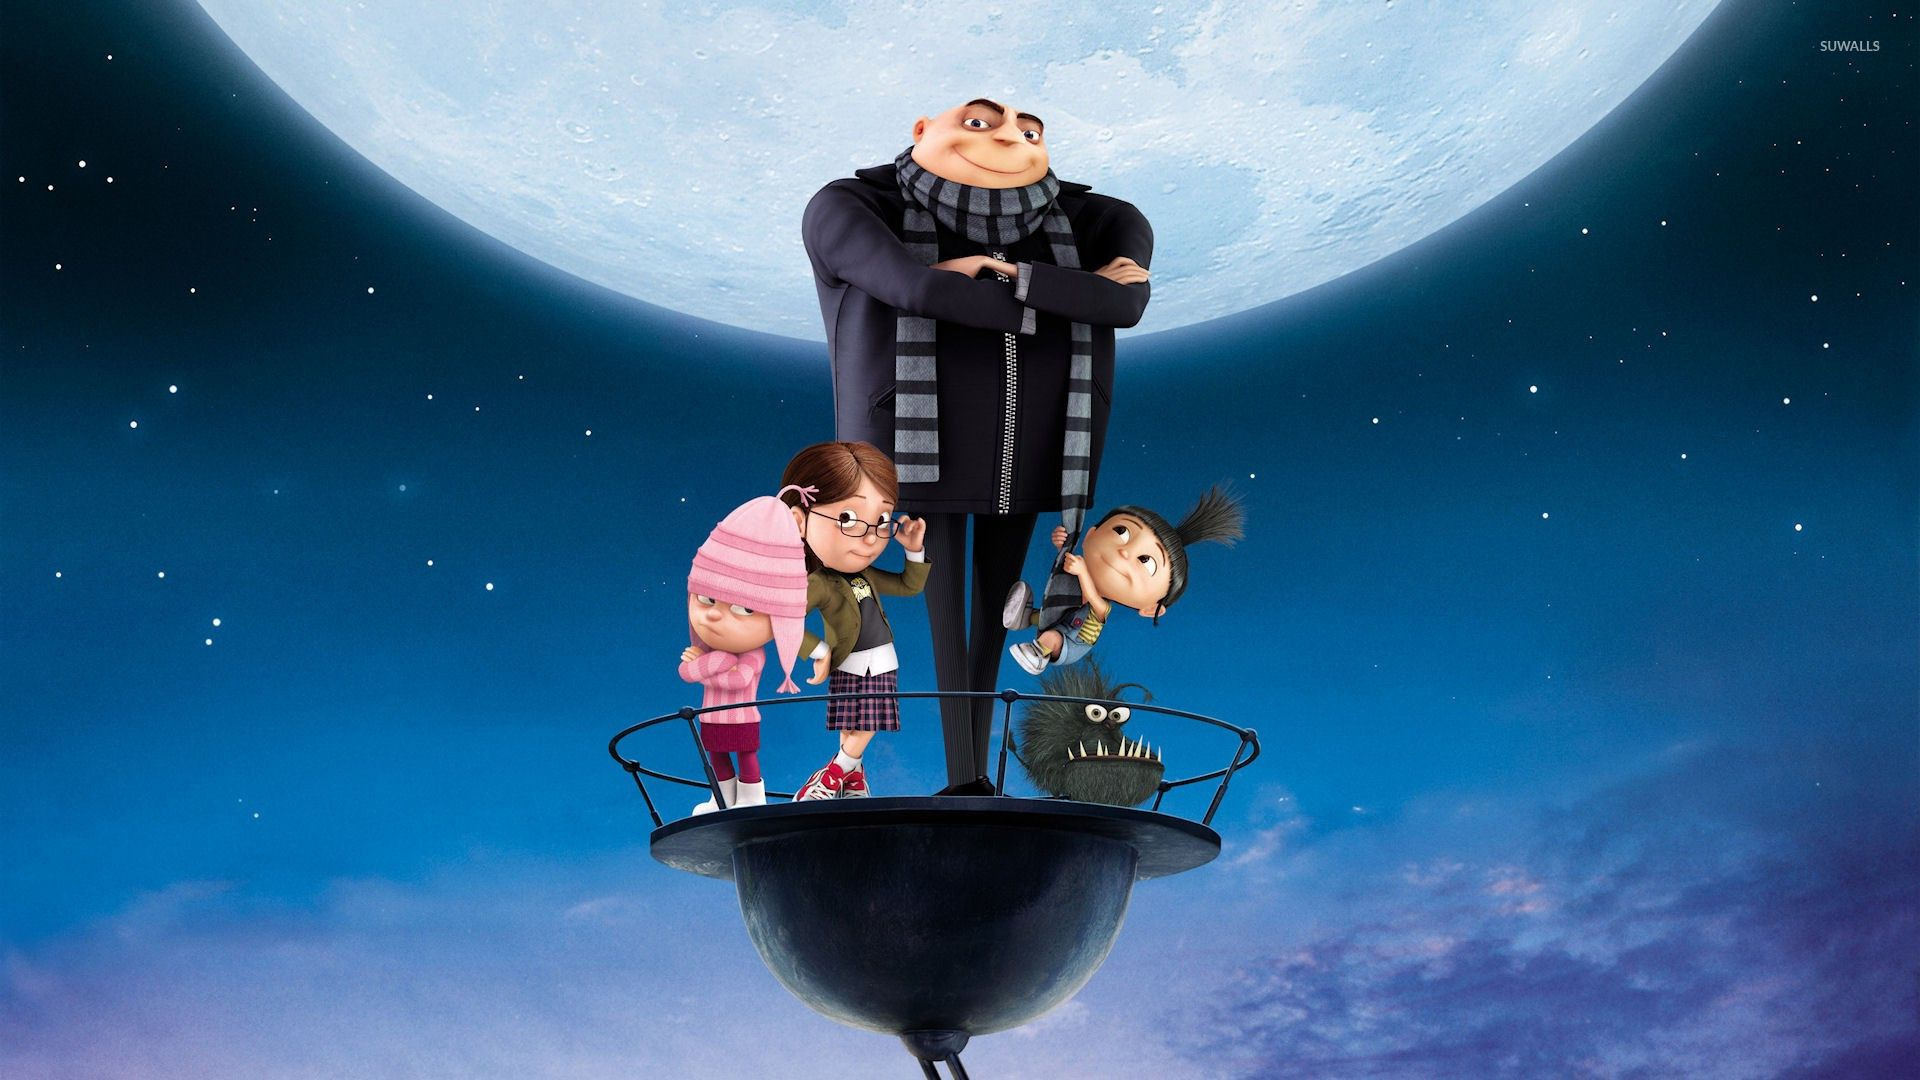 Despicable Me Hd Wallpapers HD Wallpapers